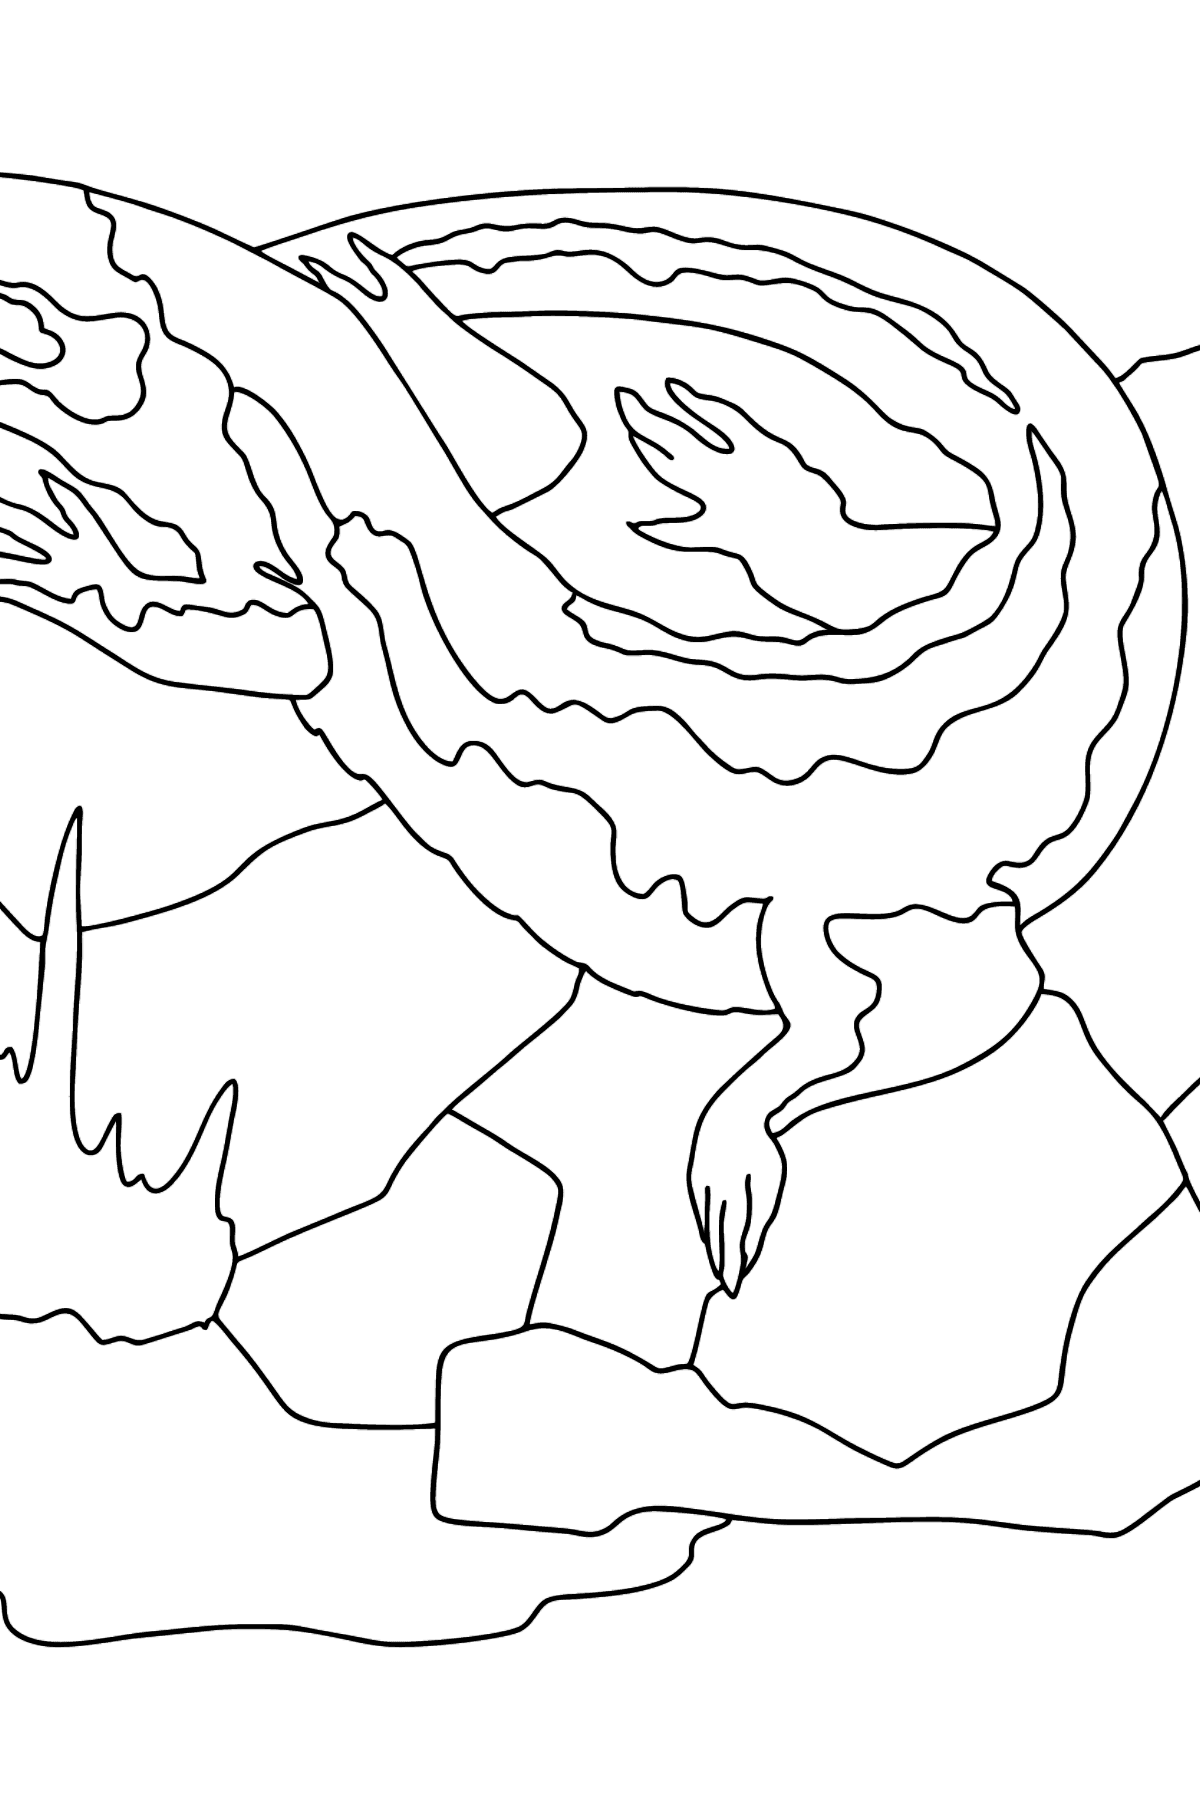 A Quick Lizard Coloring Page - Coloring Pages for Kids